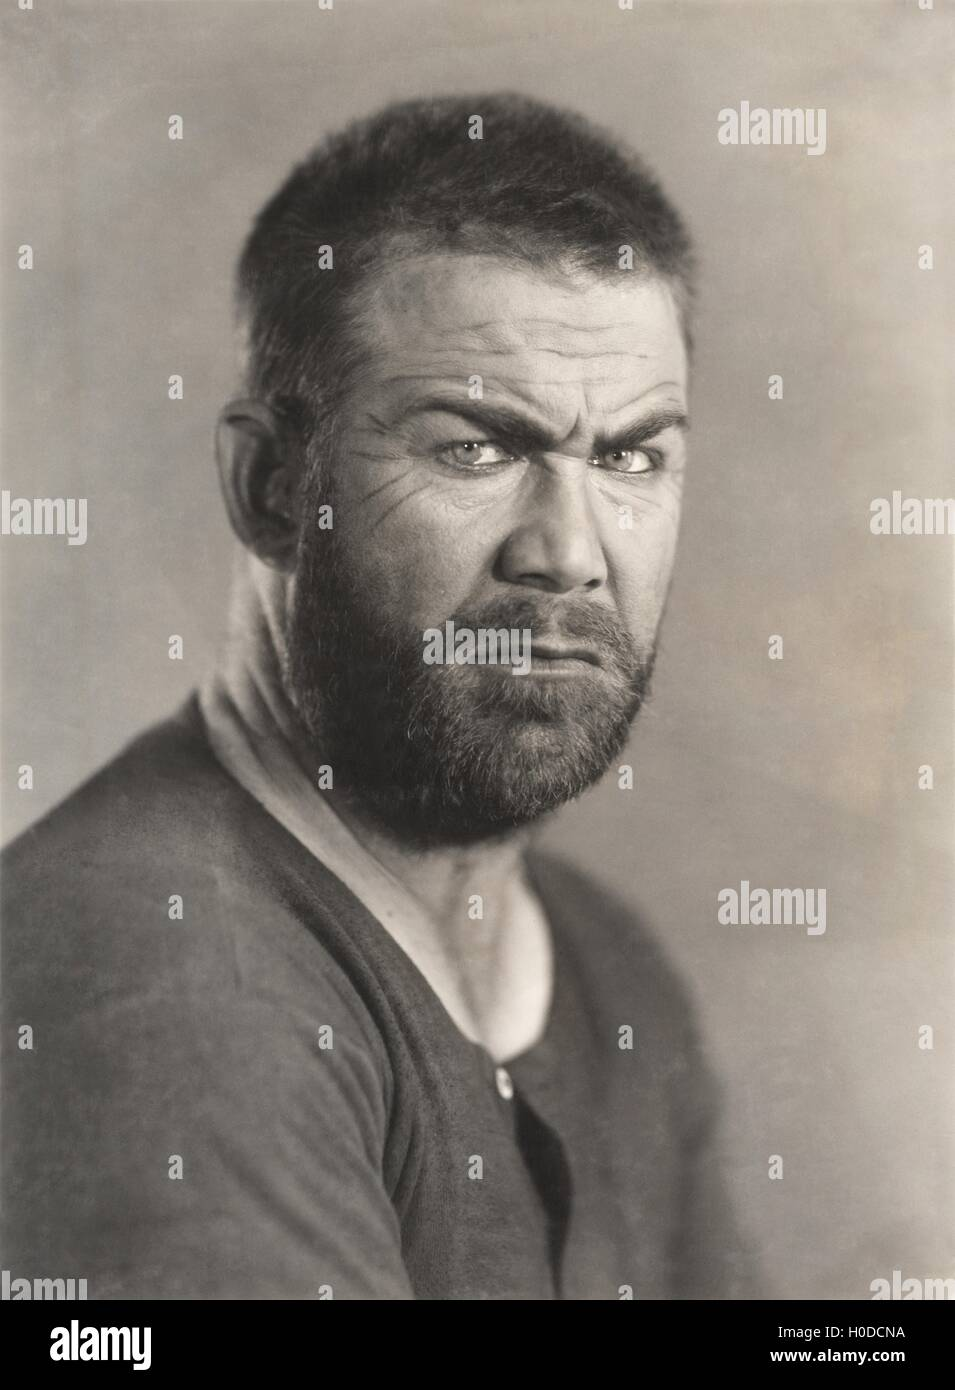 Portrait of a frowning bearded man - Stock Image